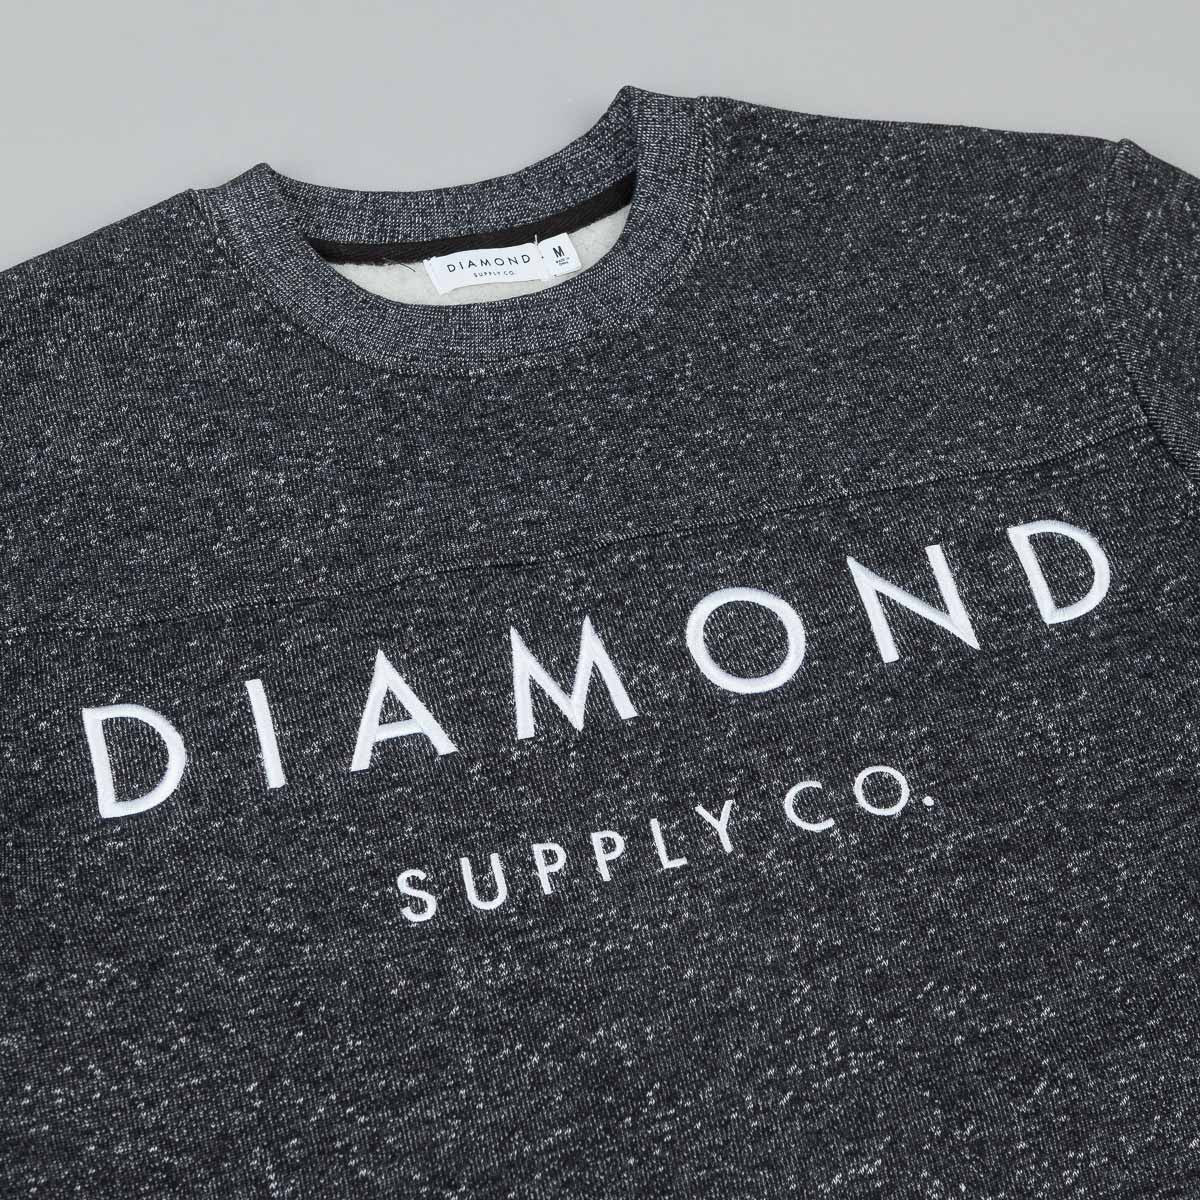 Diamond Stone Cut Long Sleeve Football Top - Pepper